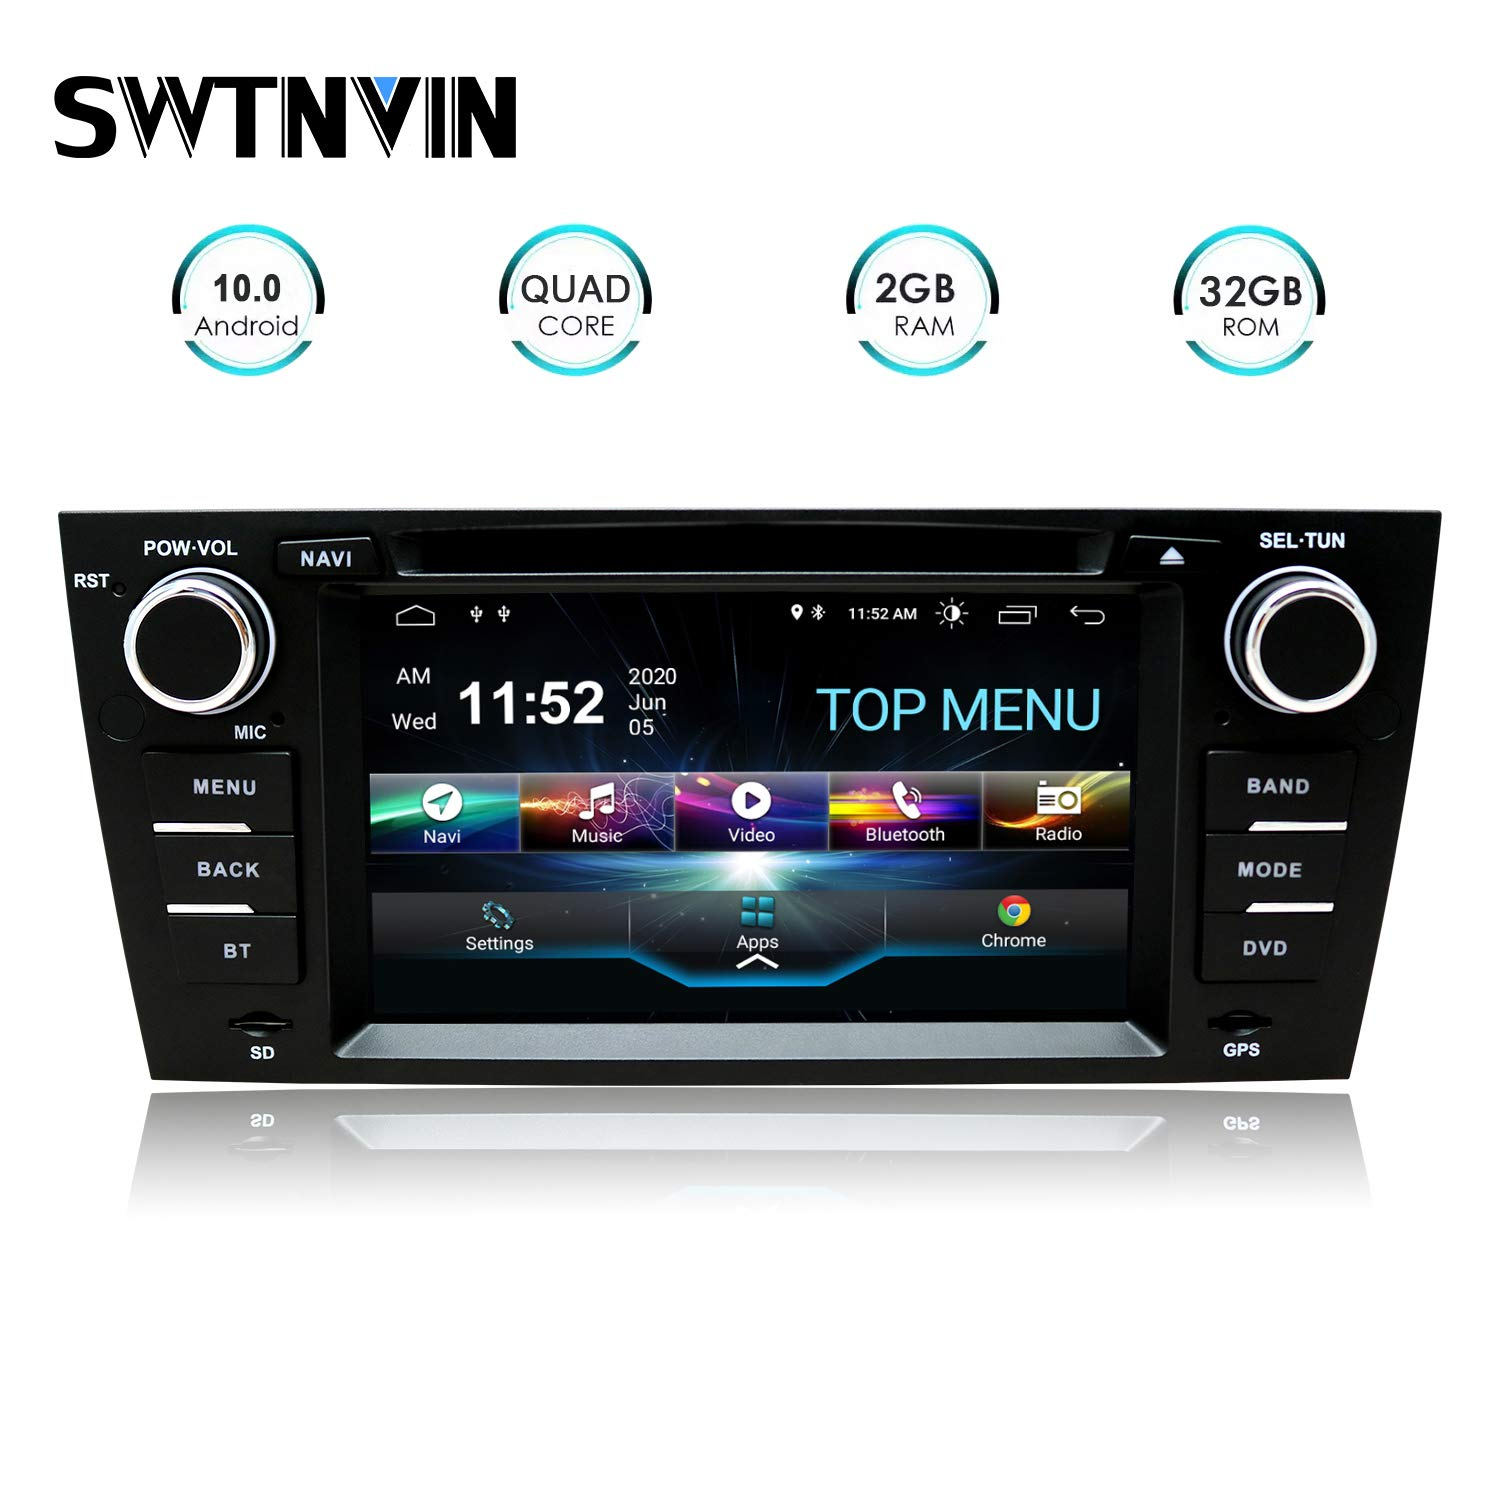 SWTNVIN Car Stereo Android 10.0 7 Inch Car Radio Fits for 3 Series E90/E91/E92/E93 GPS Navigation for Car Support…